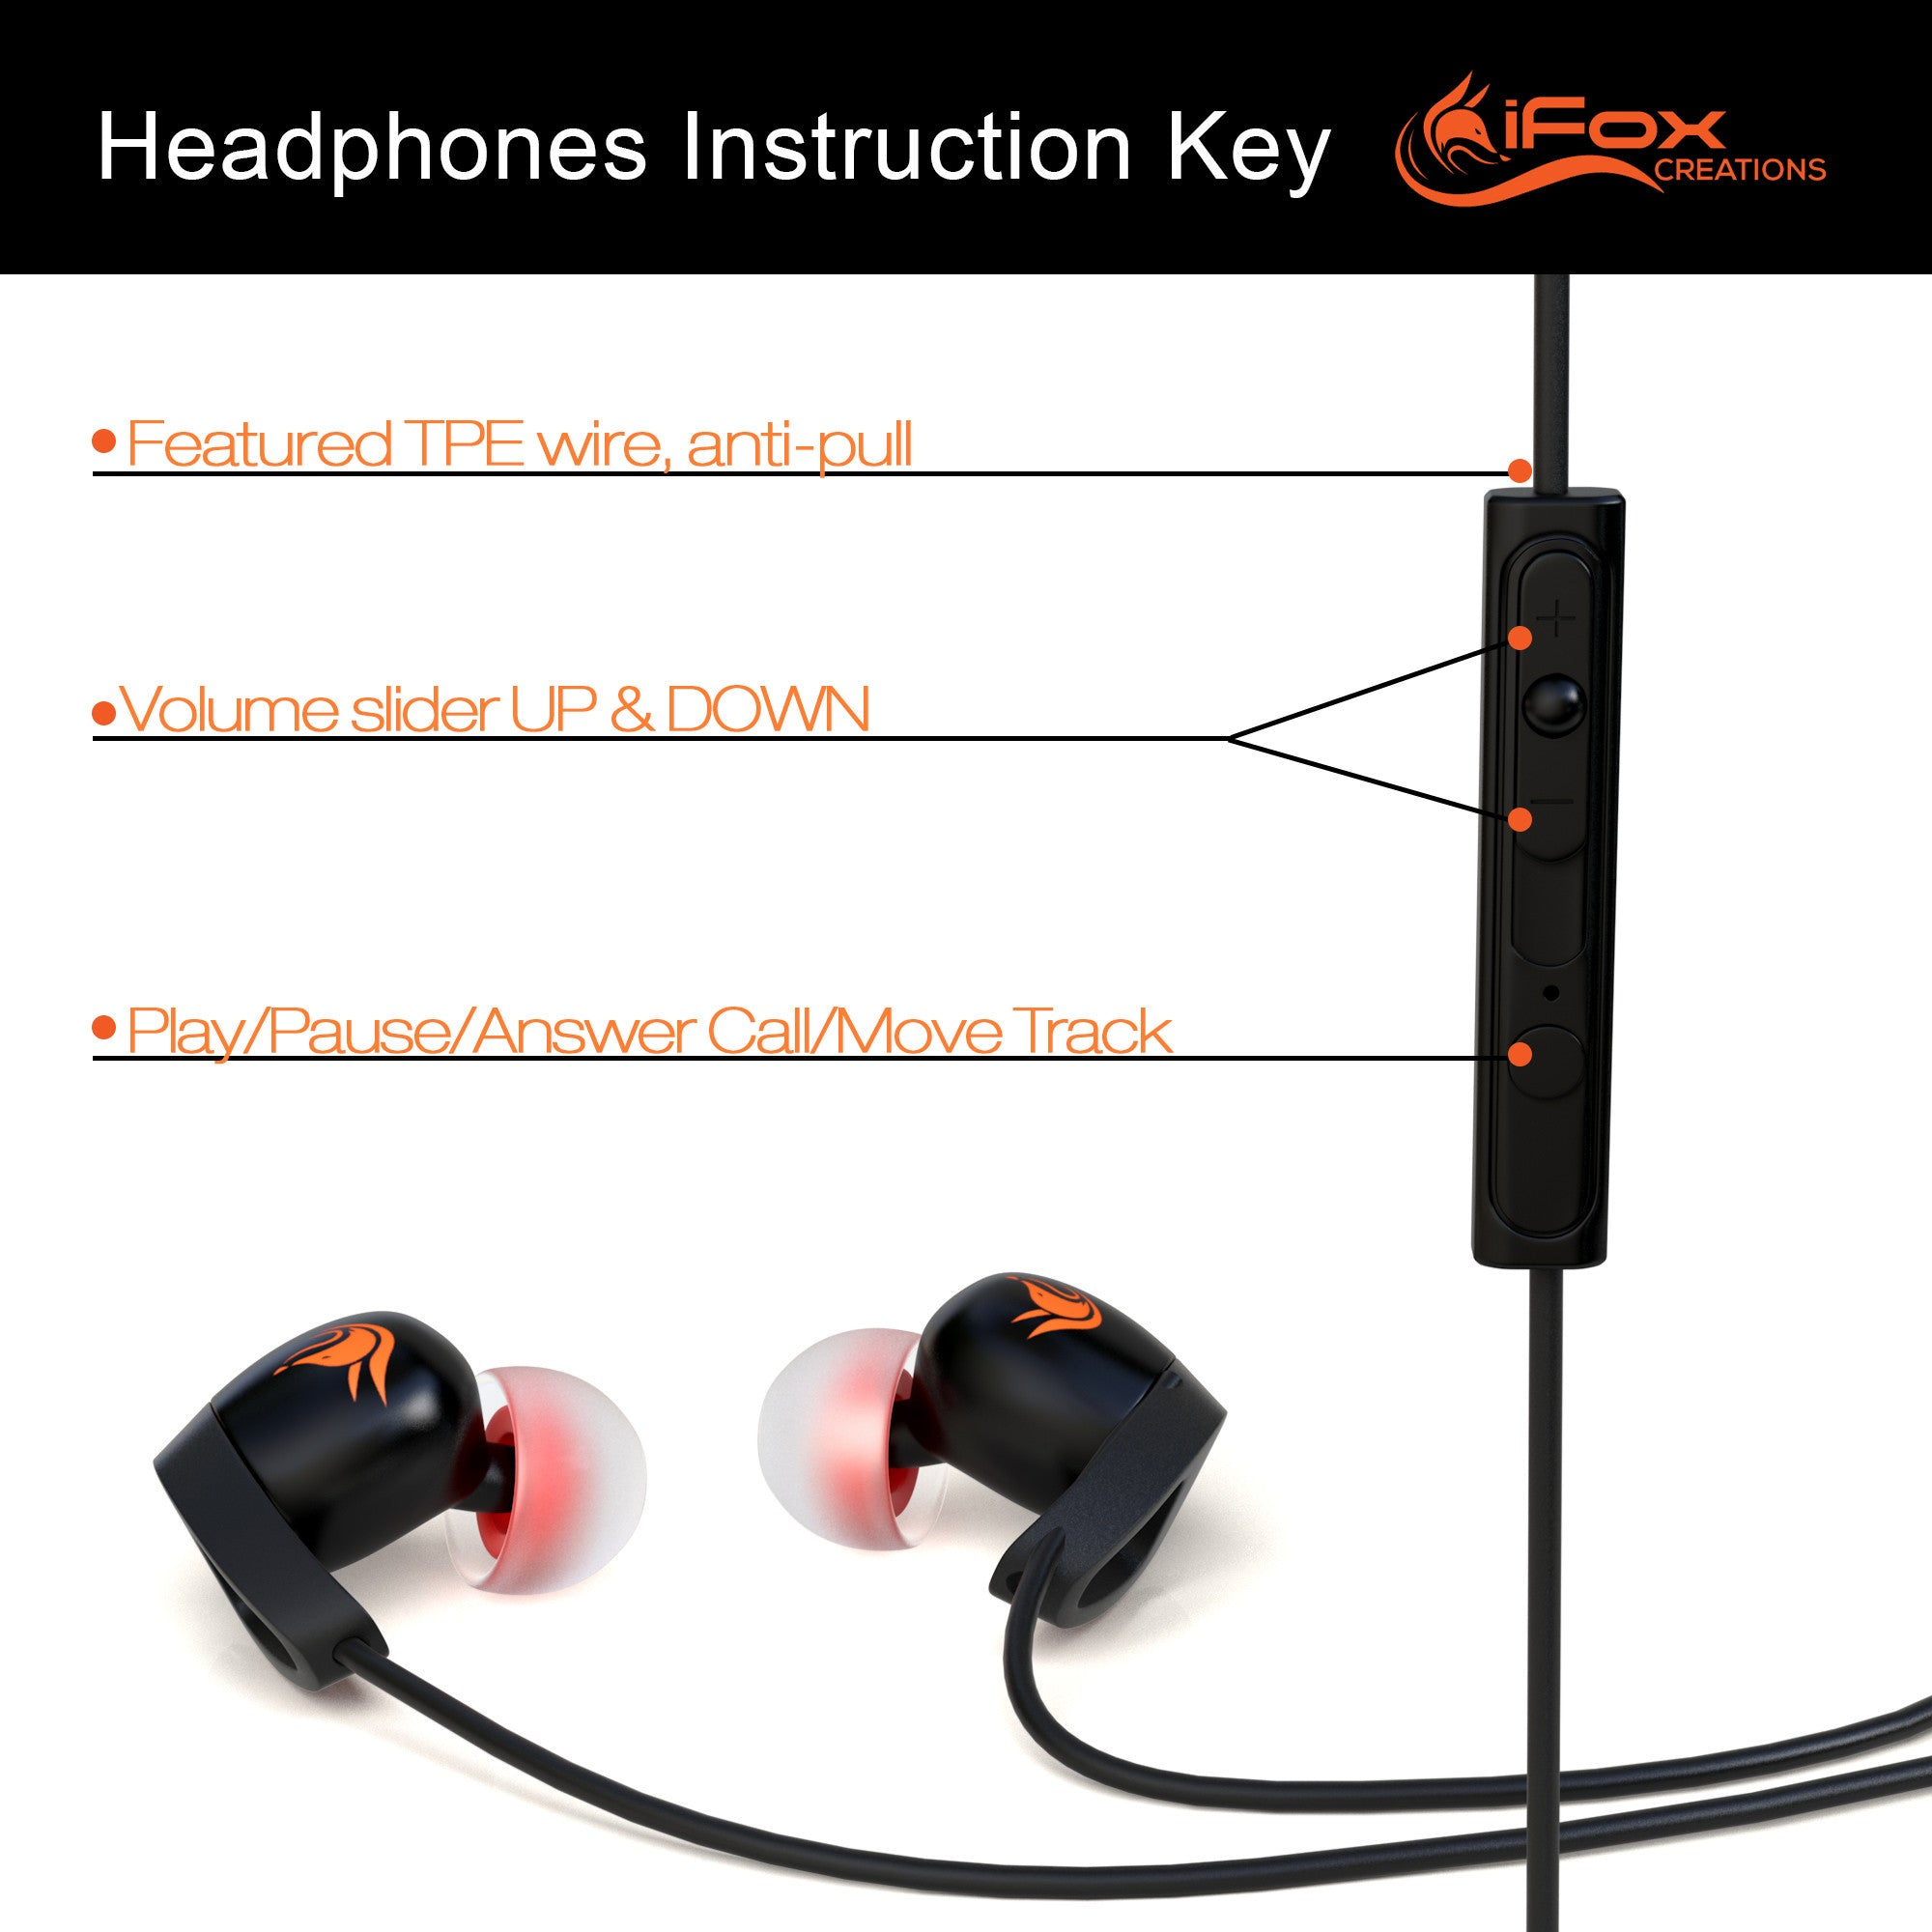 Noise Cancelling Earbuds   iFox Creations